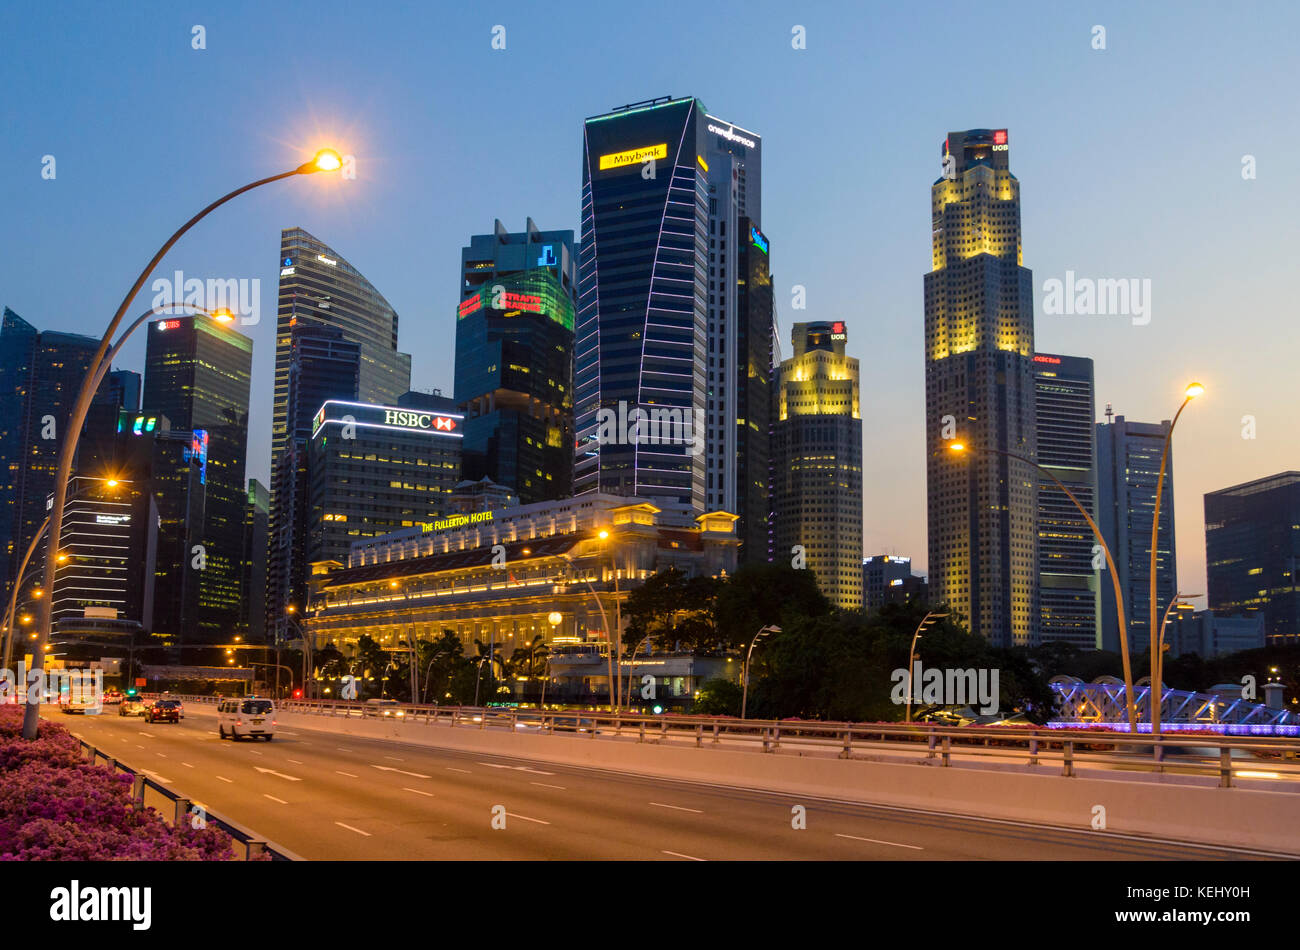 Singapore city sunset over the Jubilee Bridge and the skyscrapers of the downtown CBD, Singapore - Stock Image